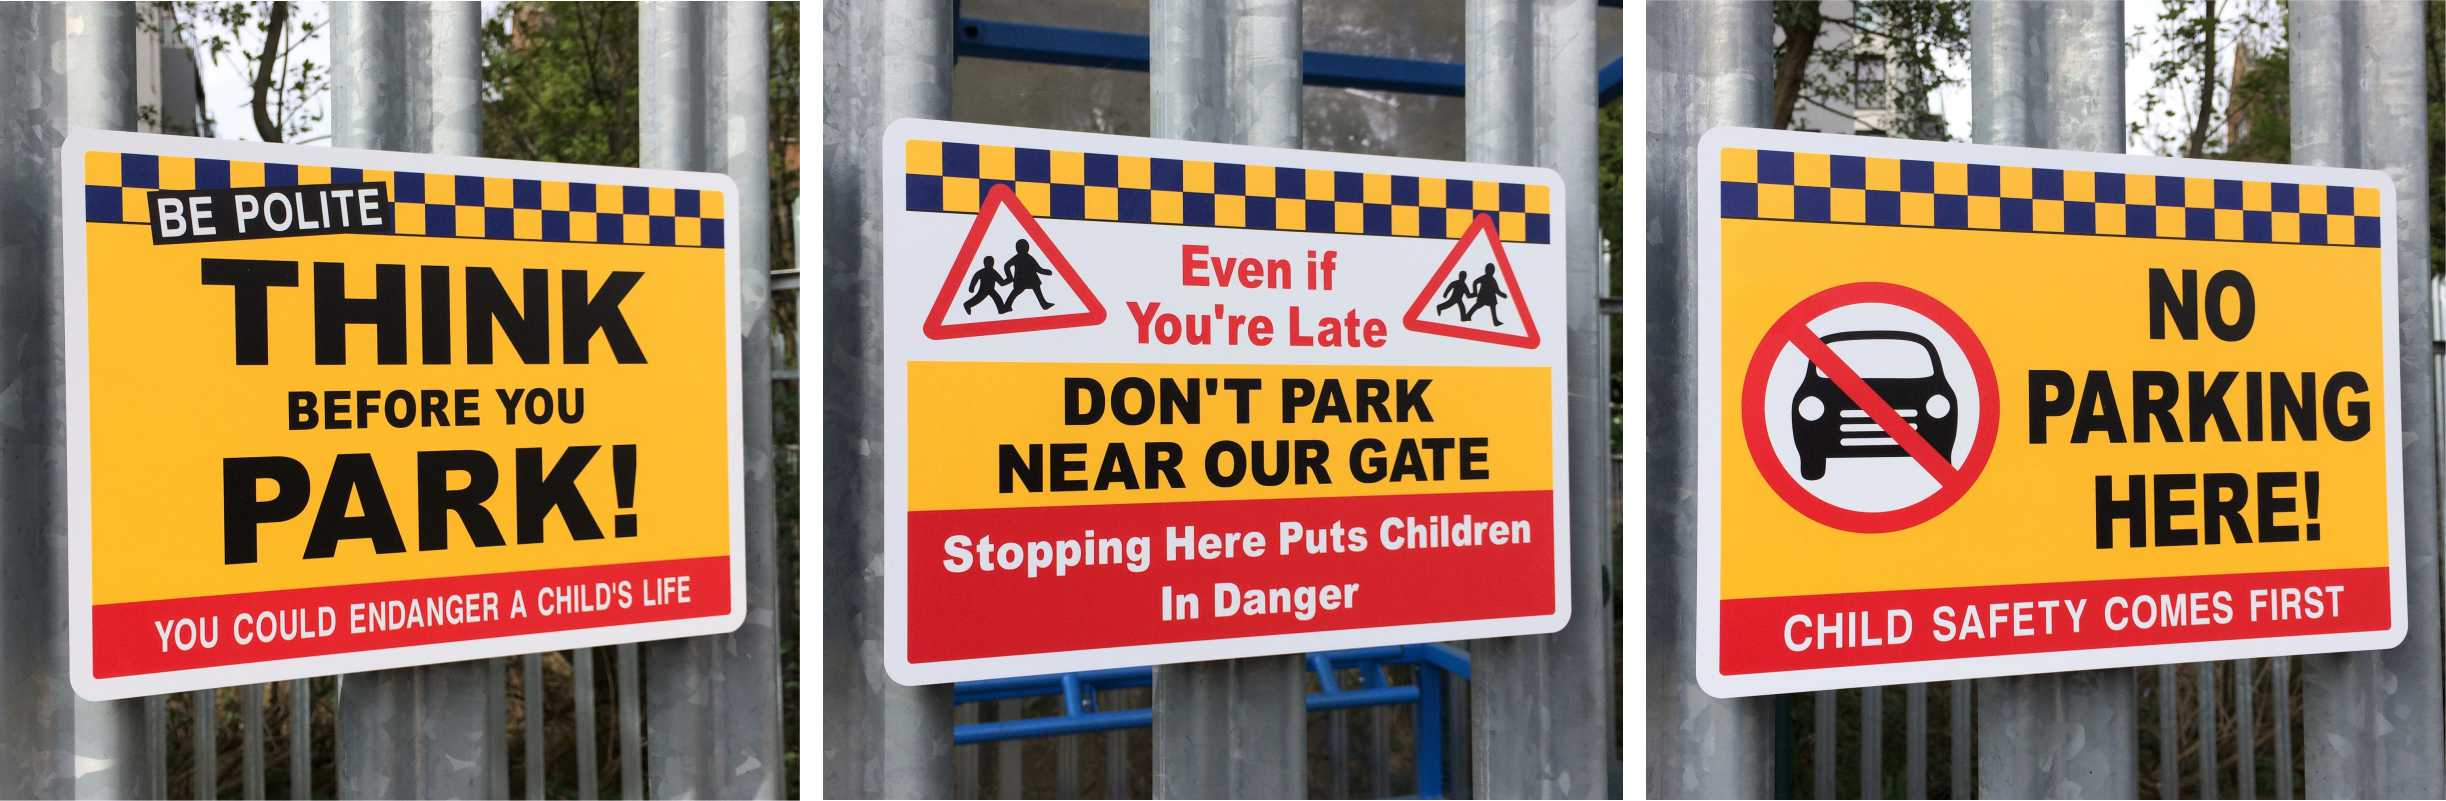 School No Parking Safety Signs